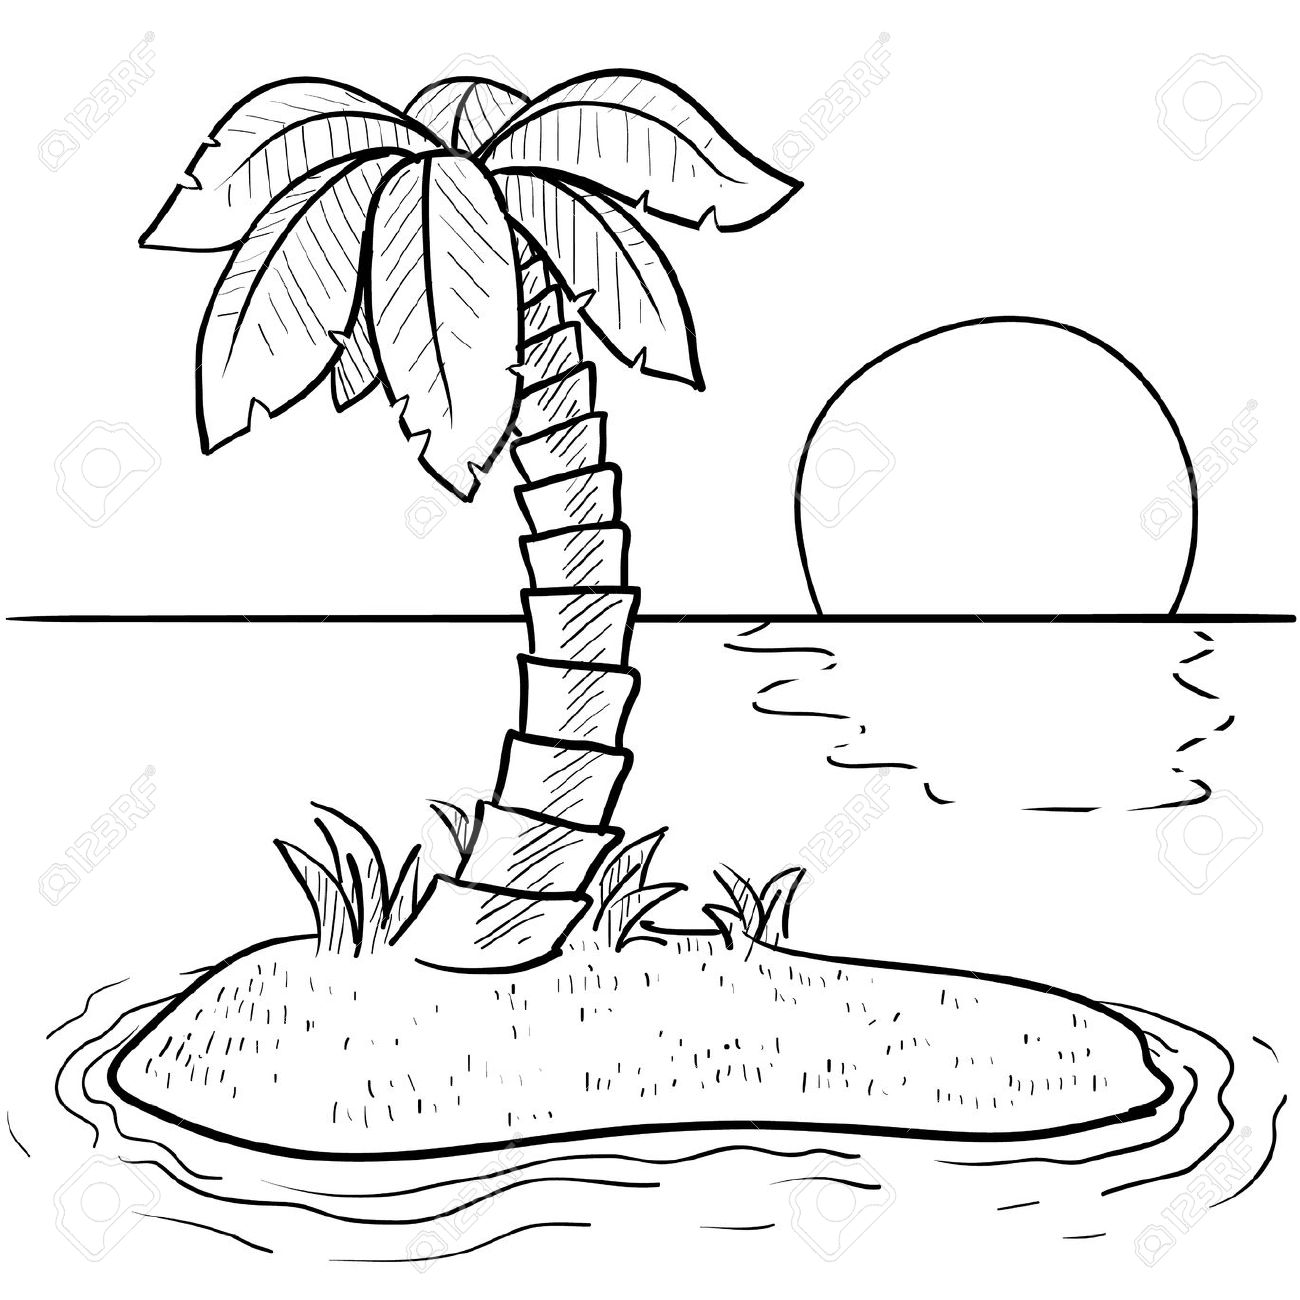 1300x1300 Doodle Style Tropical Or Deserted Island With Palm Tree And Sunset